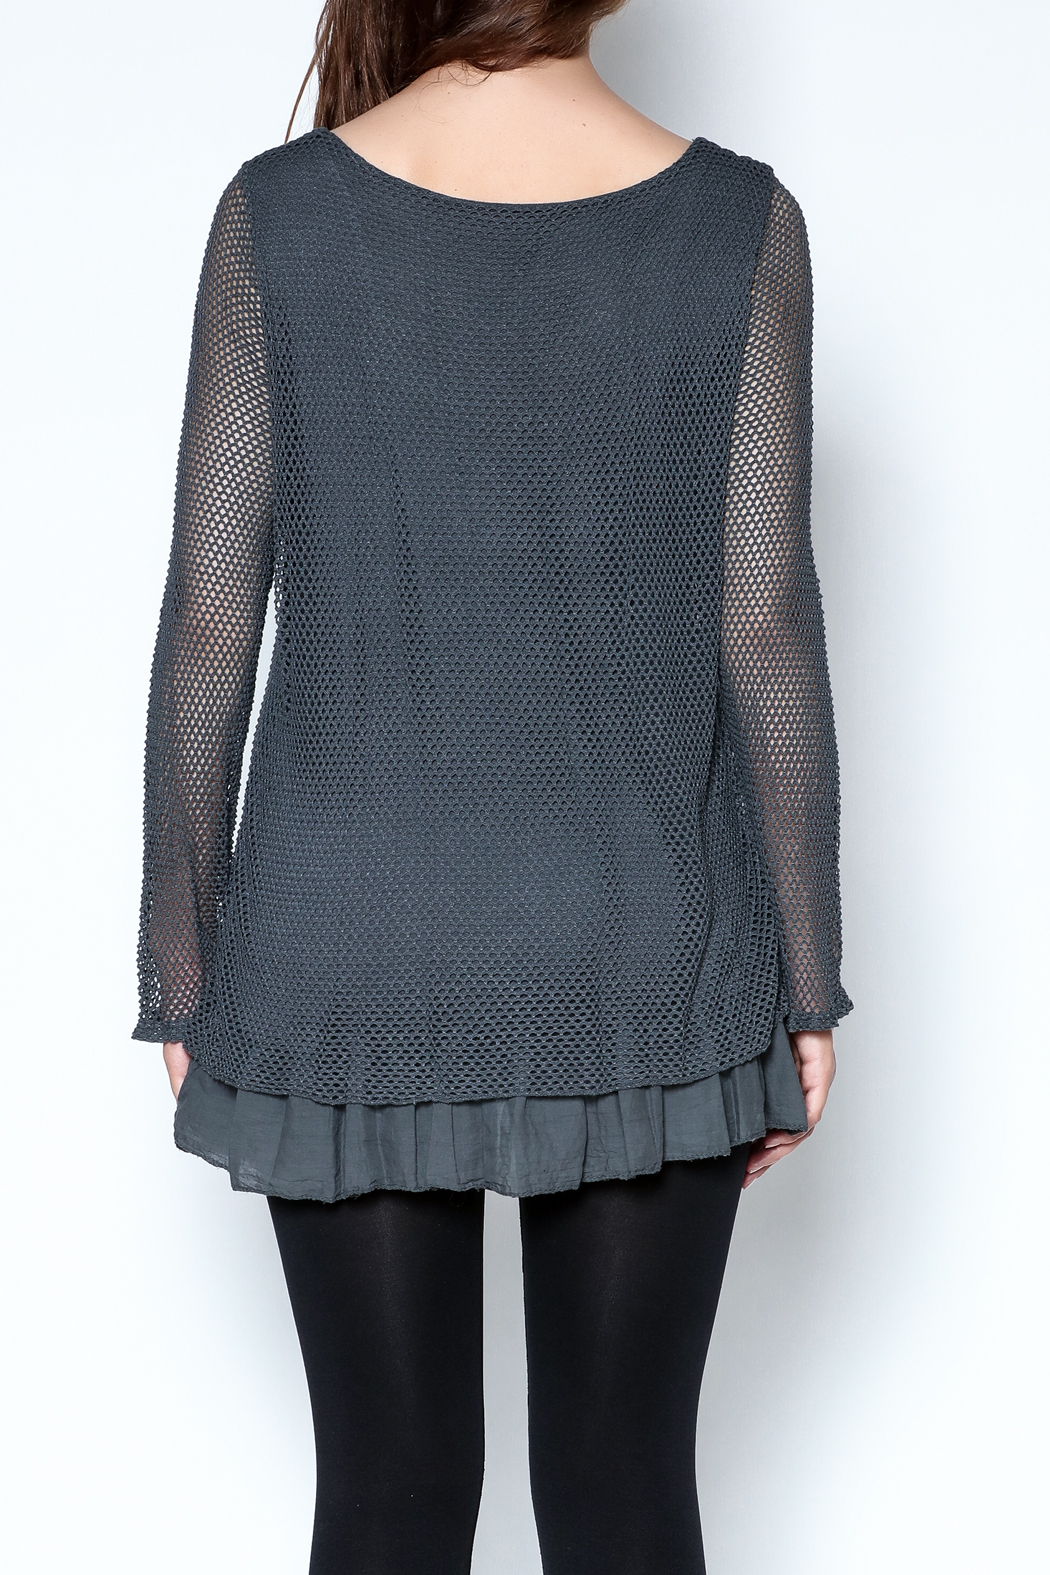 Catherine Lillywhite Knit Lace Top - Back Cropped Image